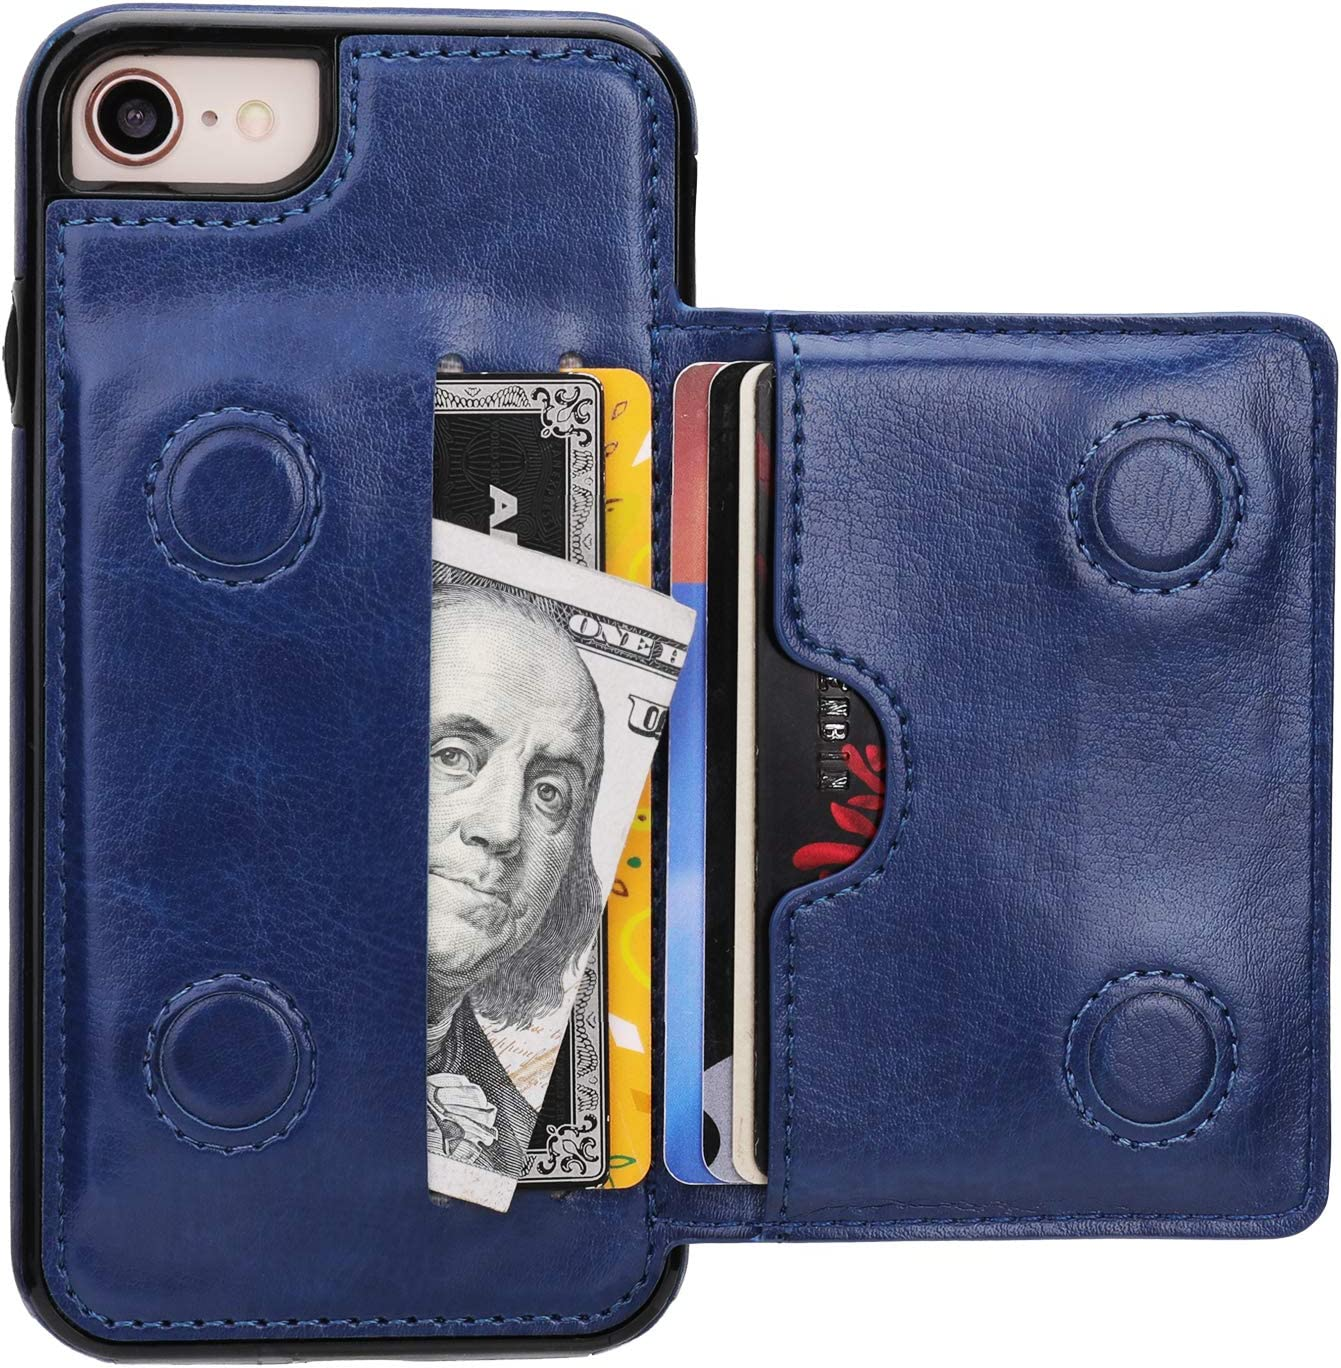 KIHUWEY iPhone 7 Wallet Case iPhone 8 iPhone SE 2020 Wallet Case with Credit Card Holder, Premium Leather Kickstand Durable Shockproof Protective Cover for iPhone 7/8/SE 4.7 Inch(Blue)